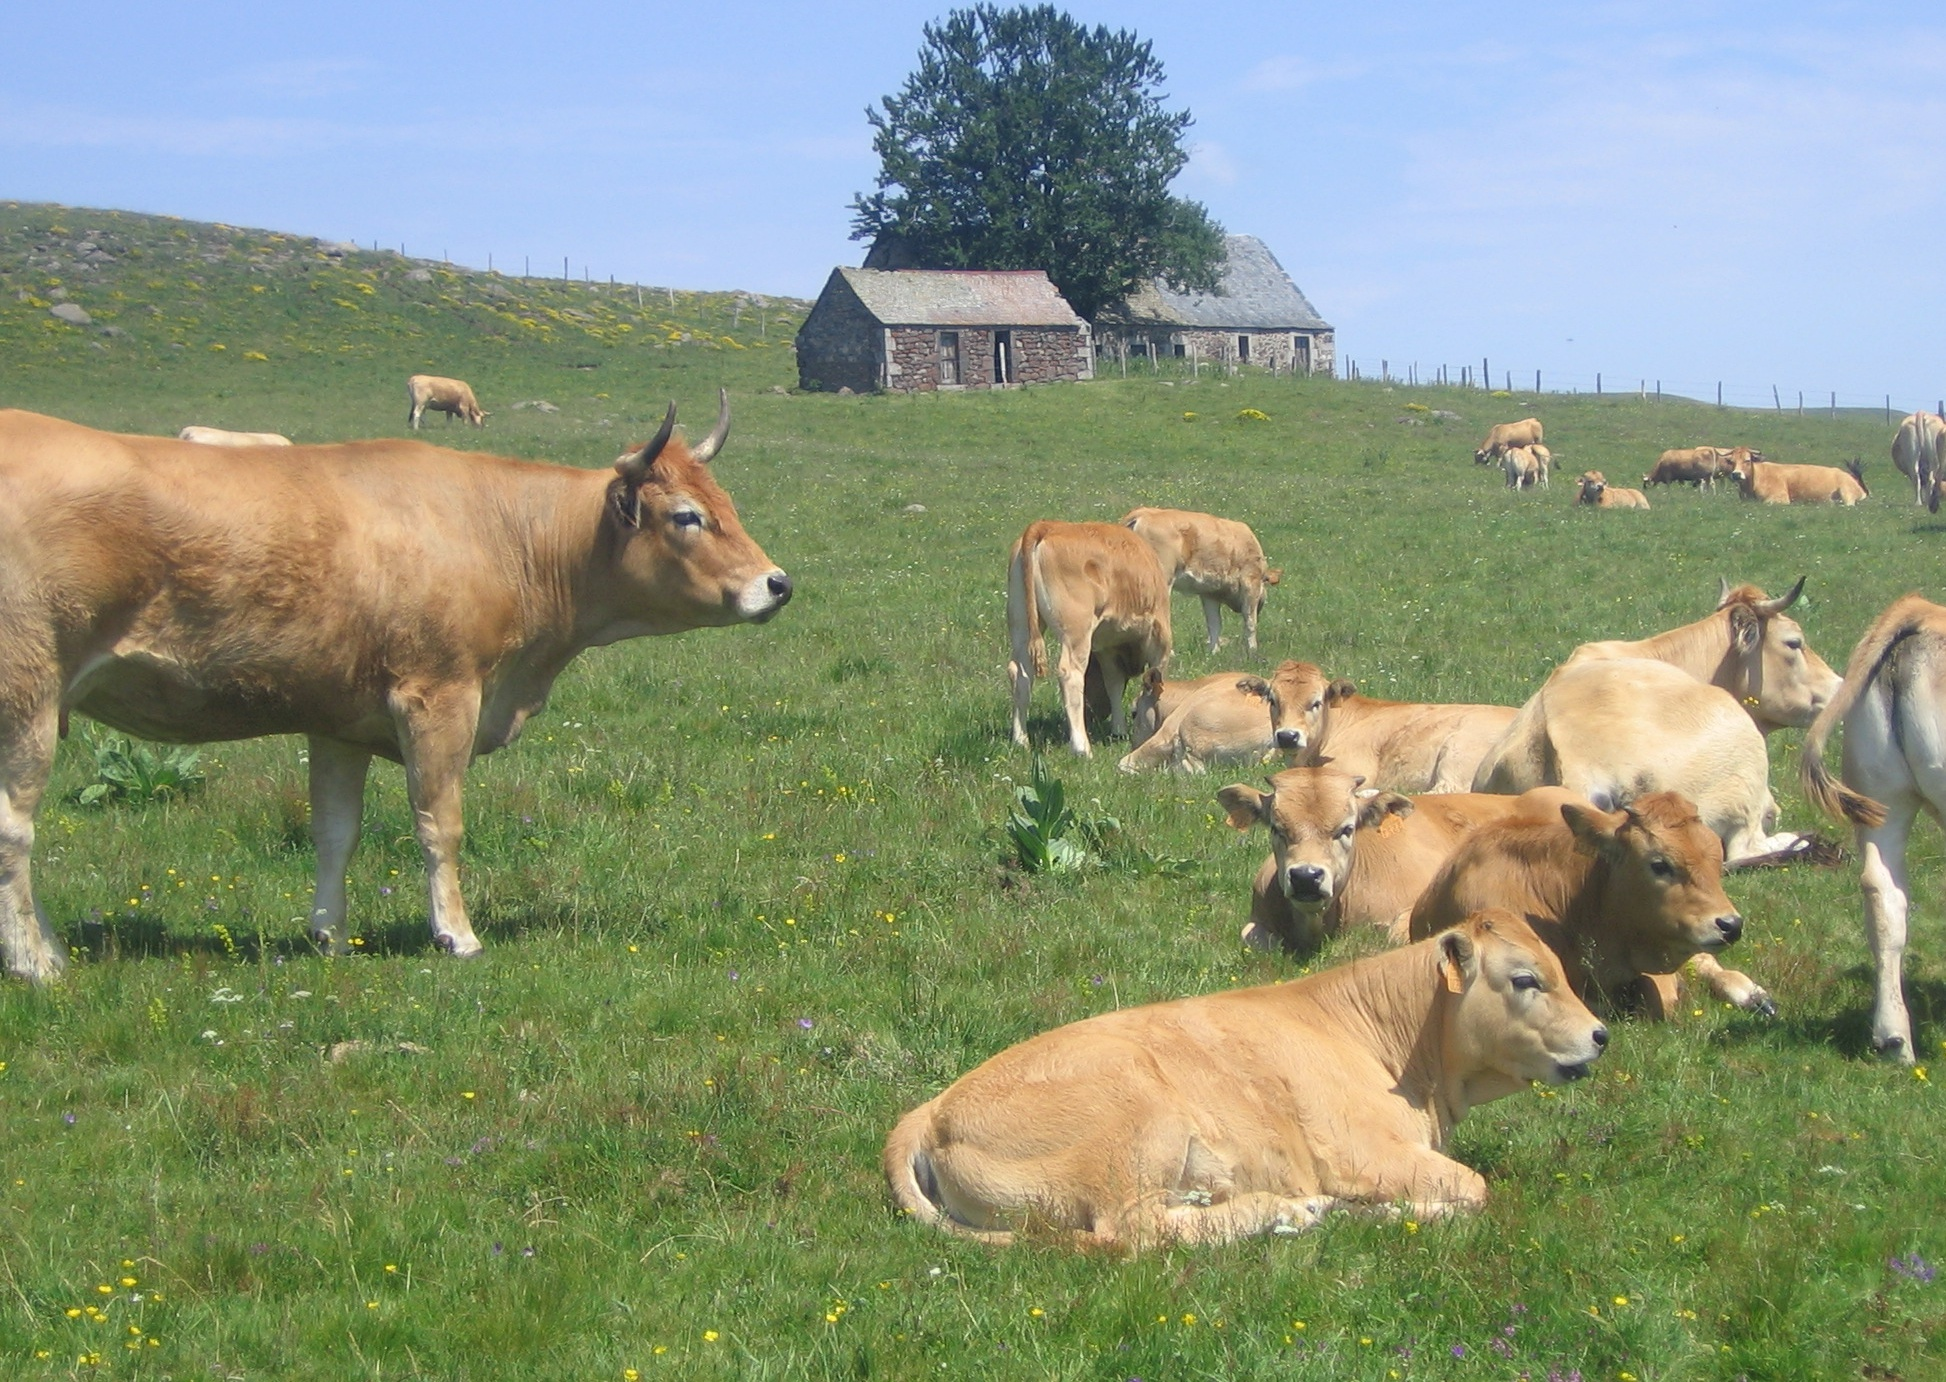 File:Aubrac, cows near a buron.jpg